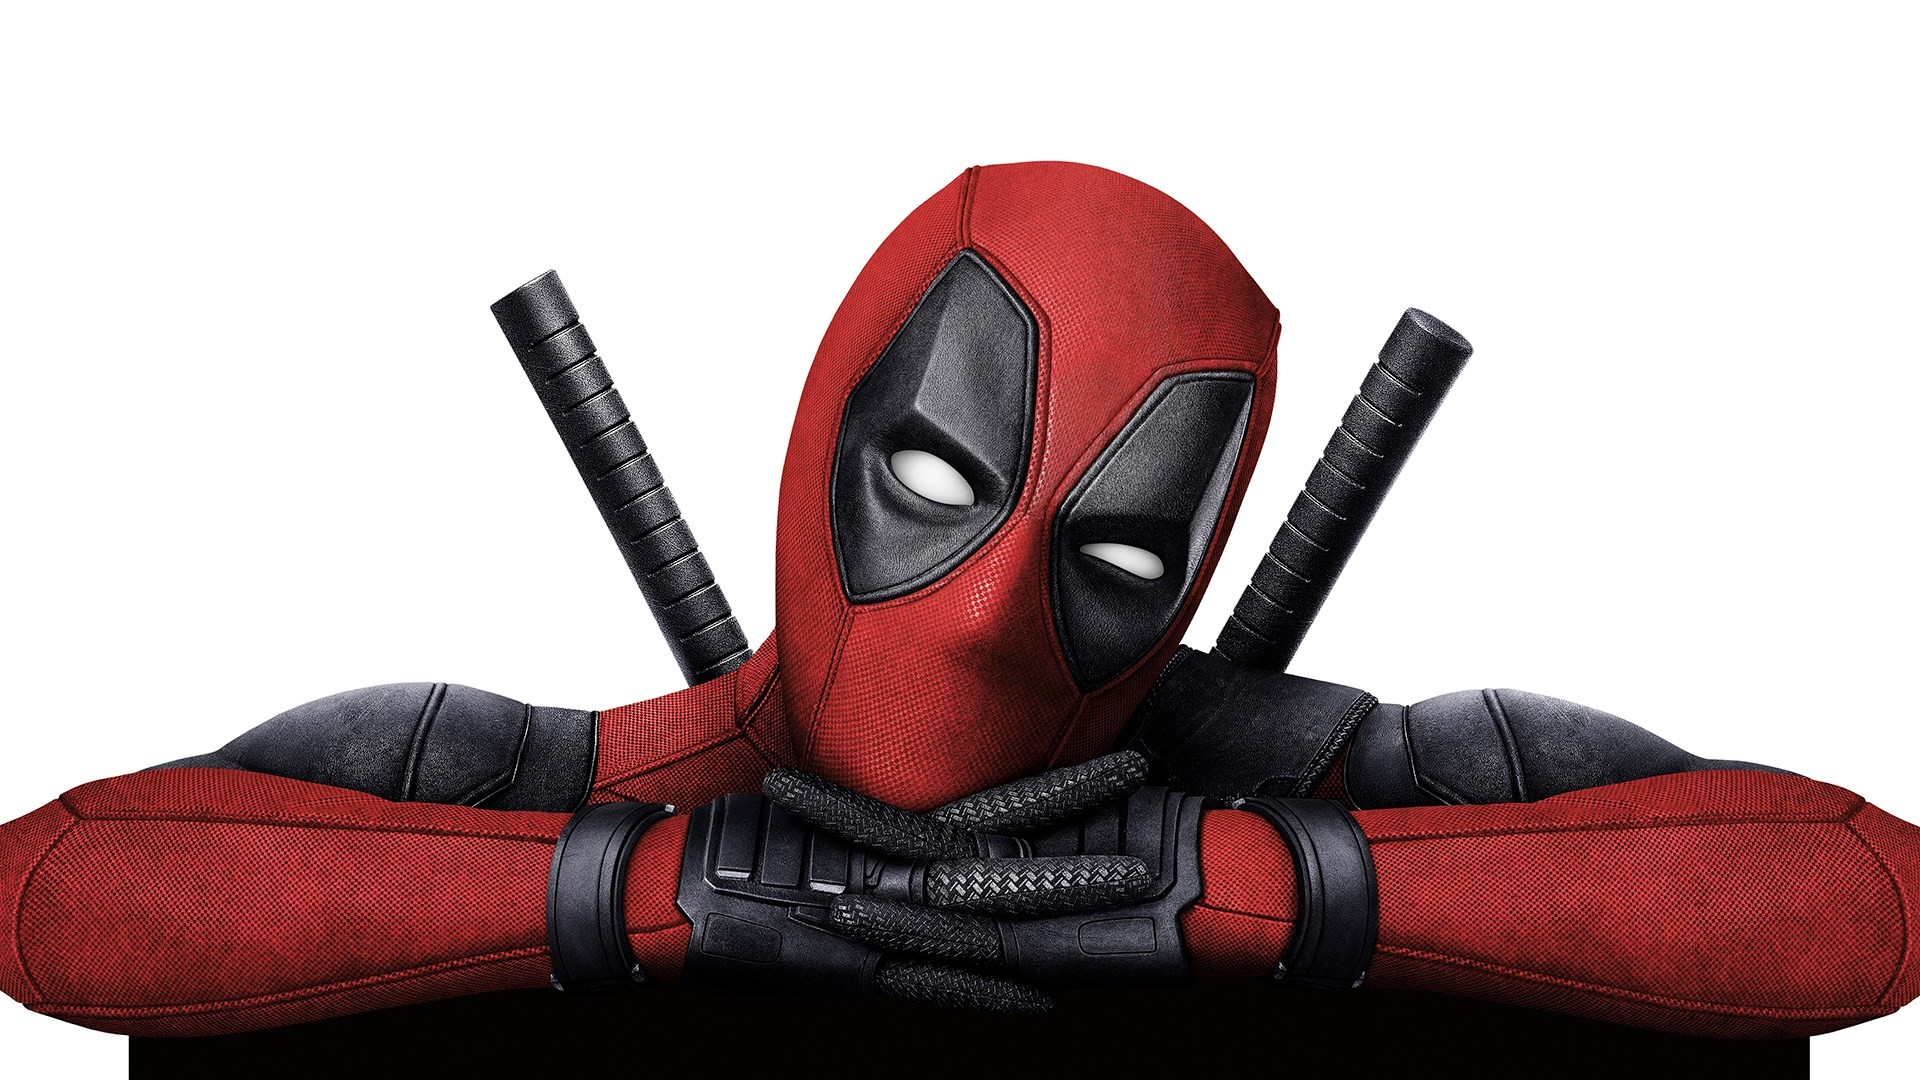 1920x1080 deadpool wallpaper